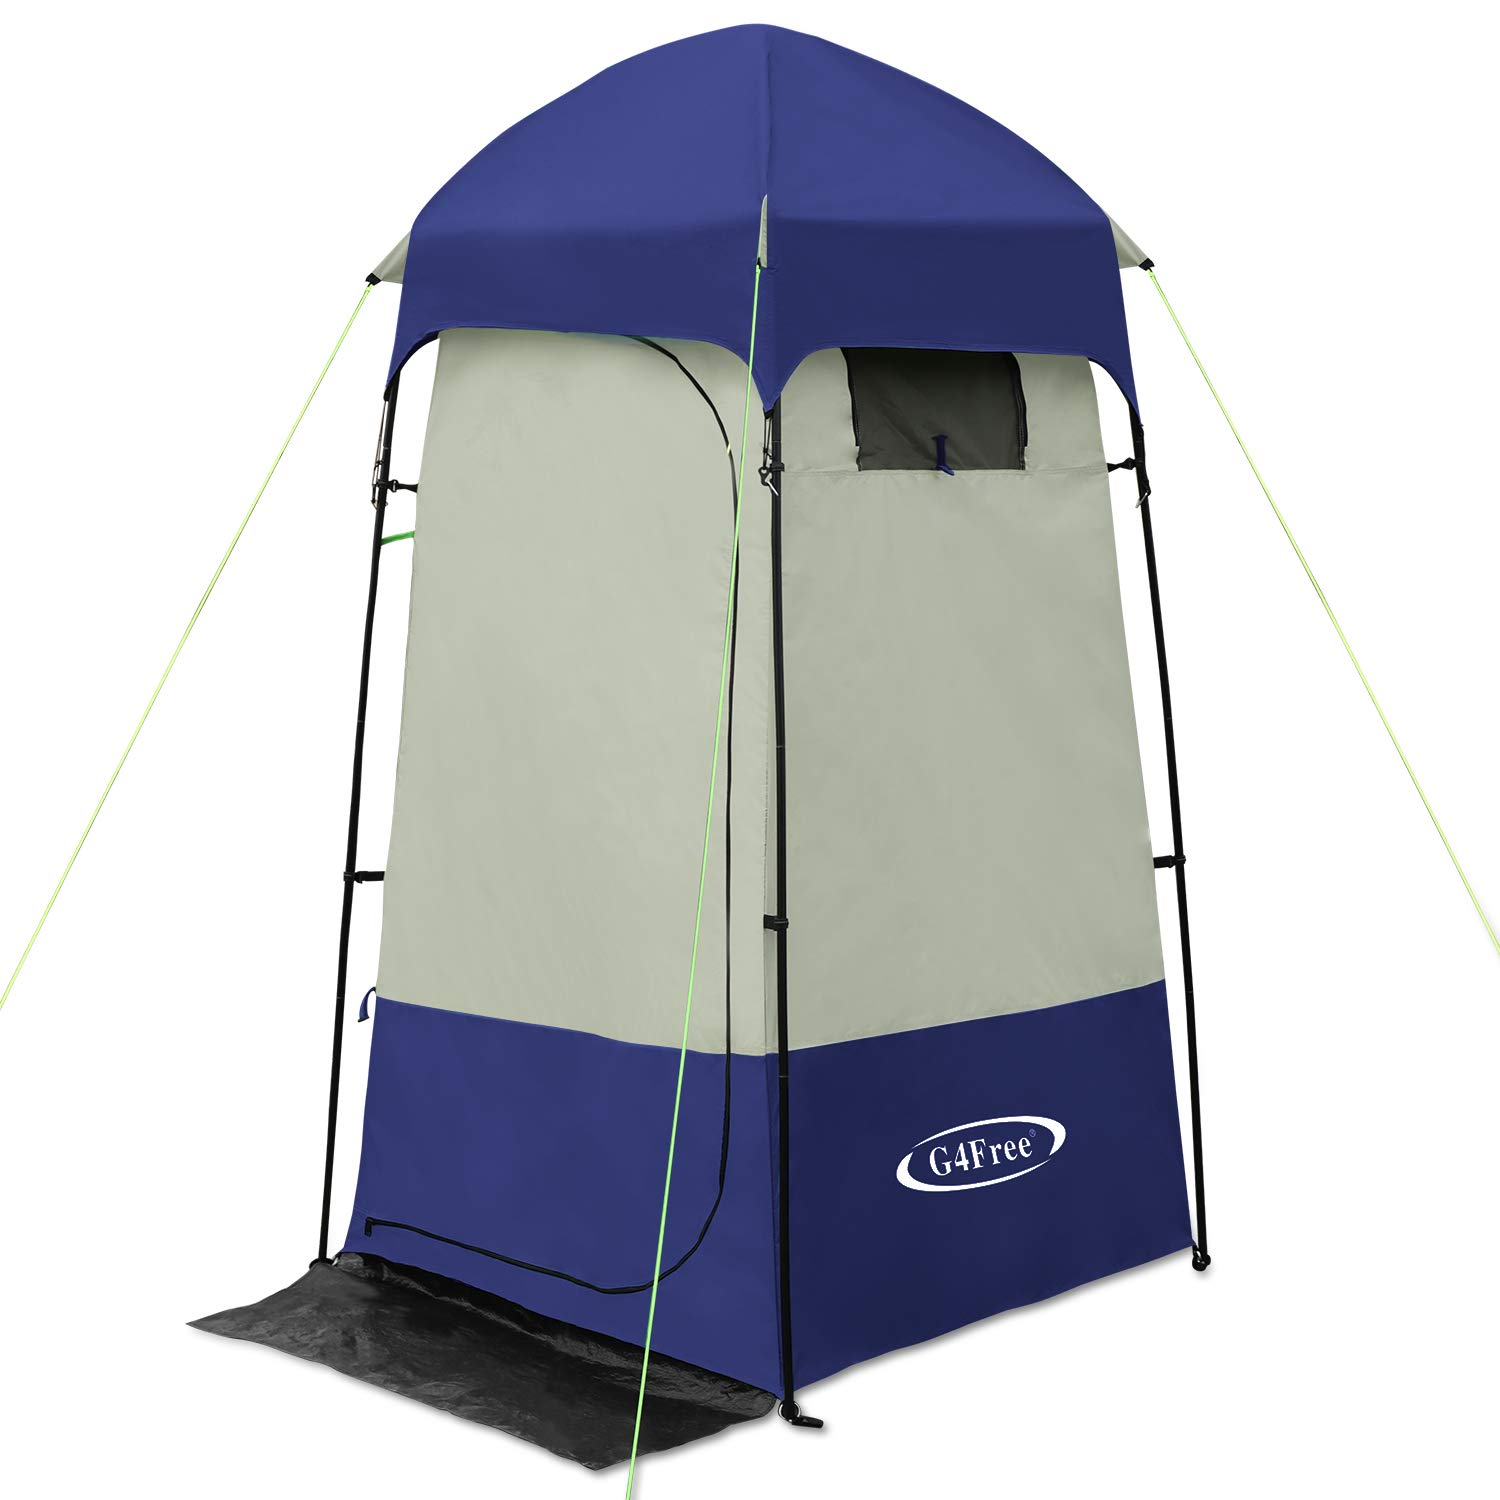 G4Free Outdoor Privacy Shelter Tent Dressing Changing Room Duluxe Shower Toilet Camping Tents (Blue)